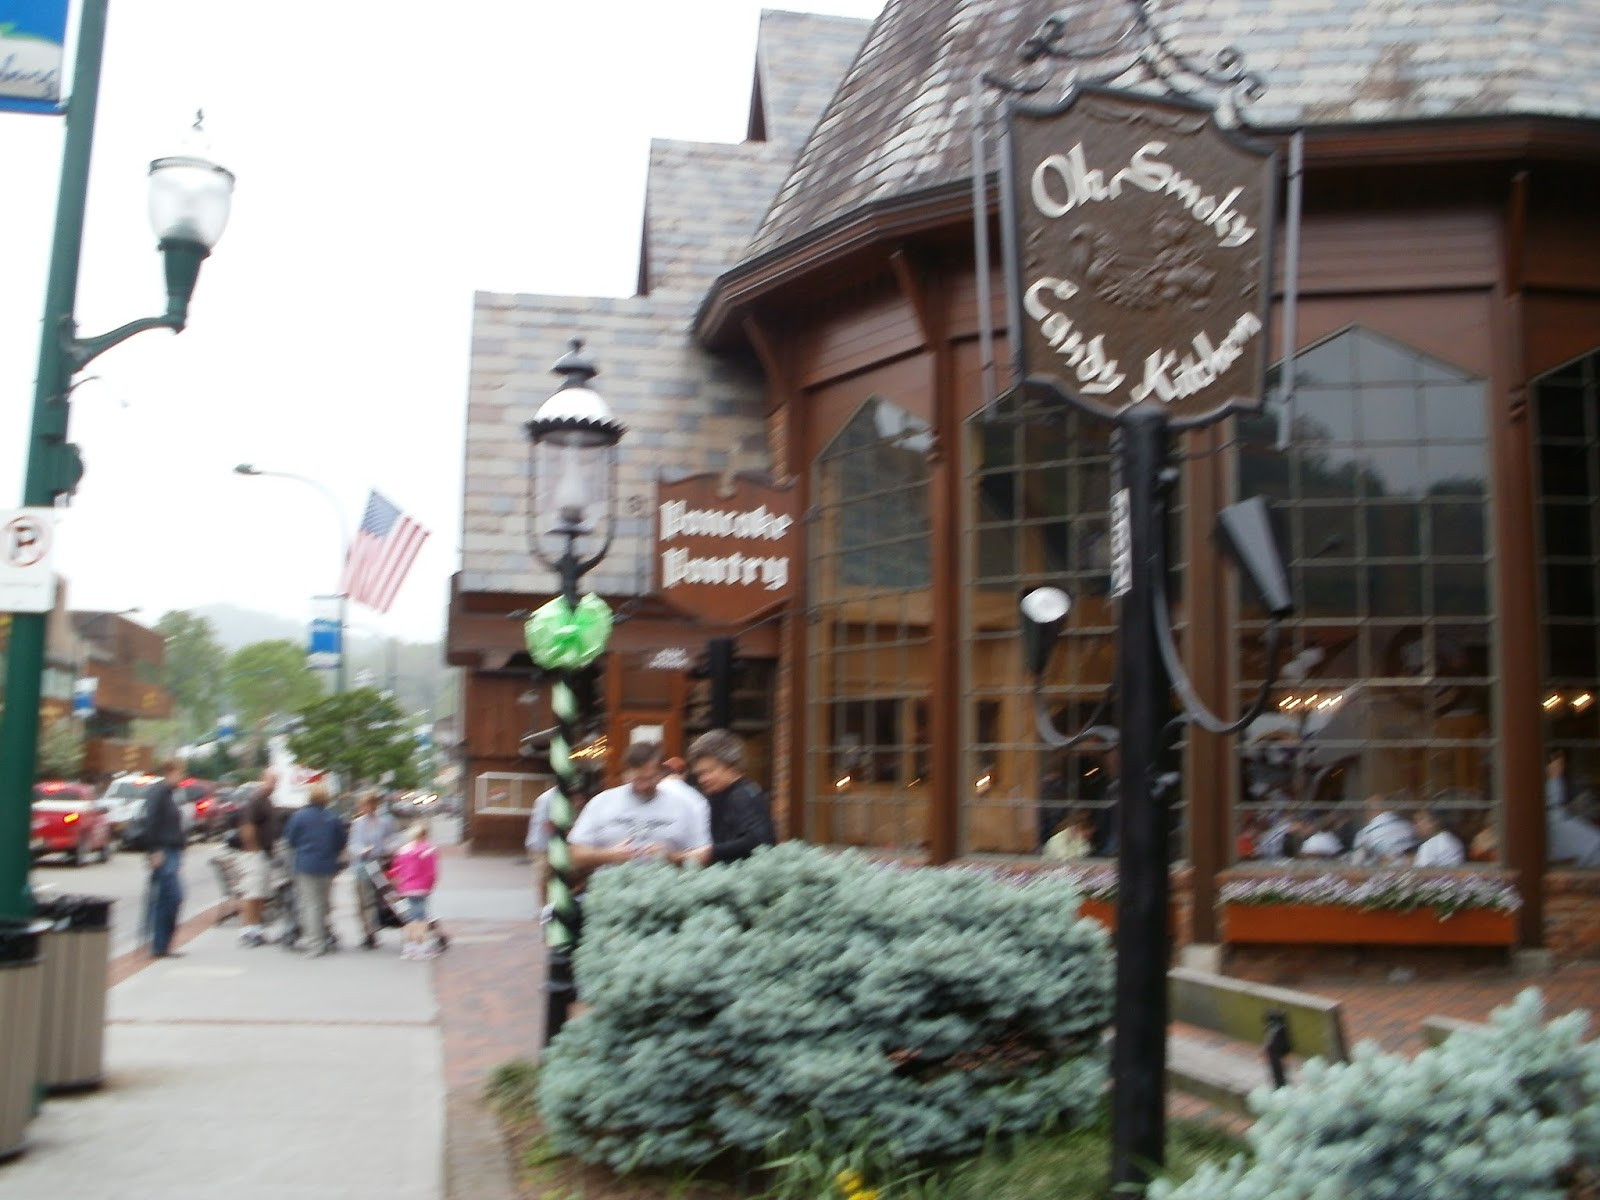 Best ideas about Pancake Pantry Gatlinburg Tn . Save or Pin Where to Eat Pancakes in Pigeon Forge Gatlinburg and Now.